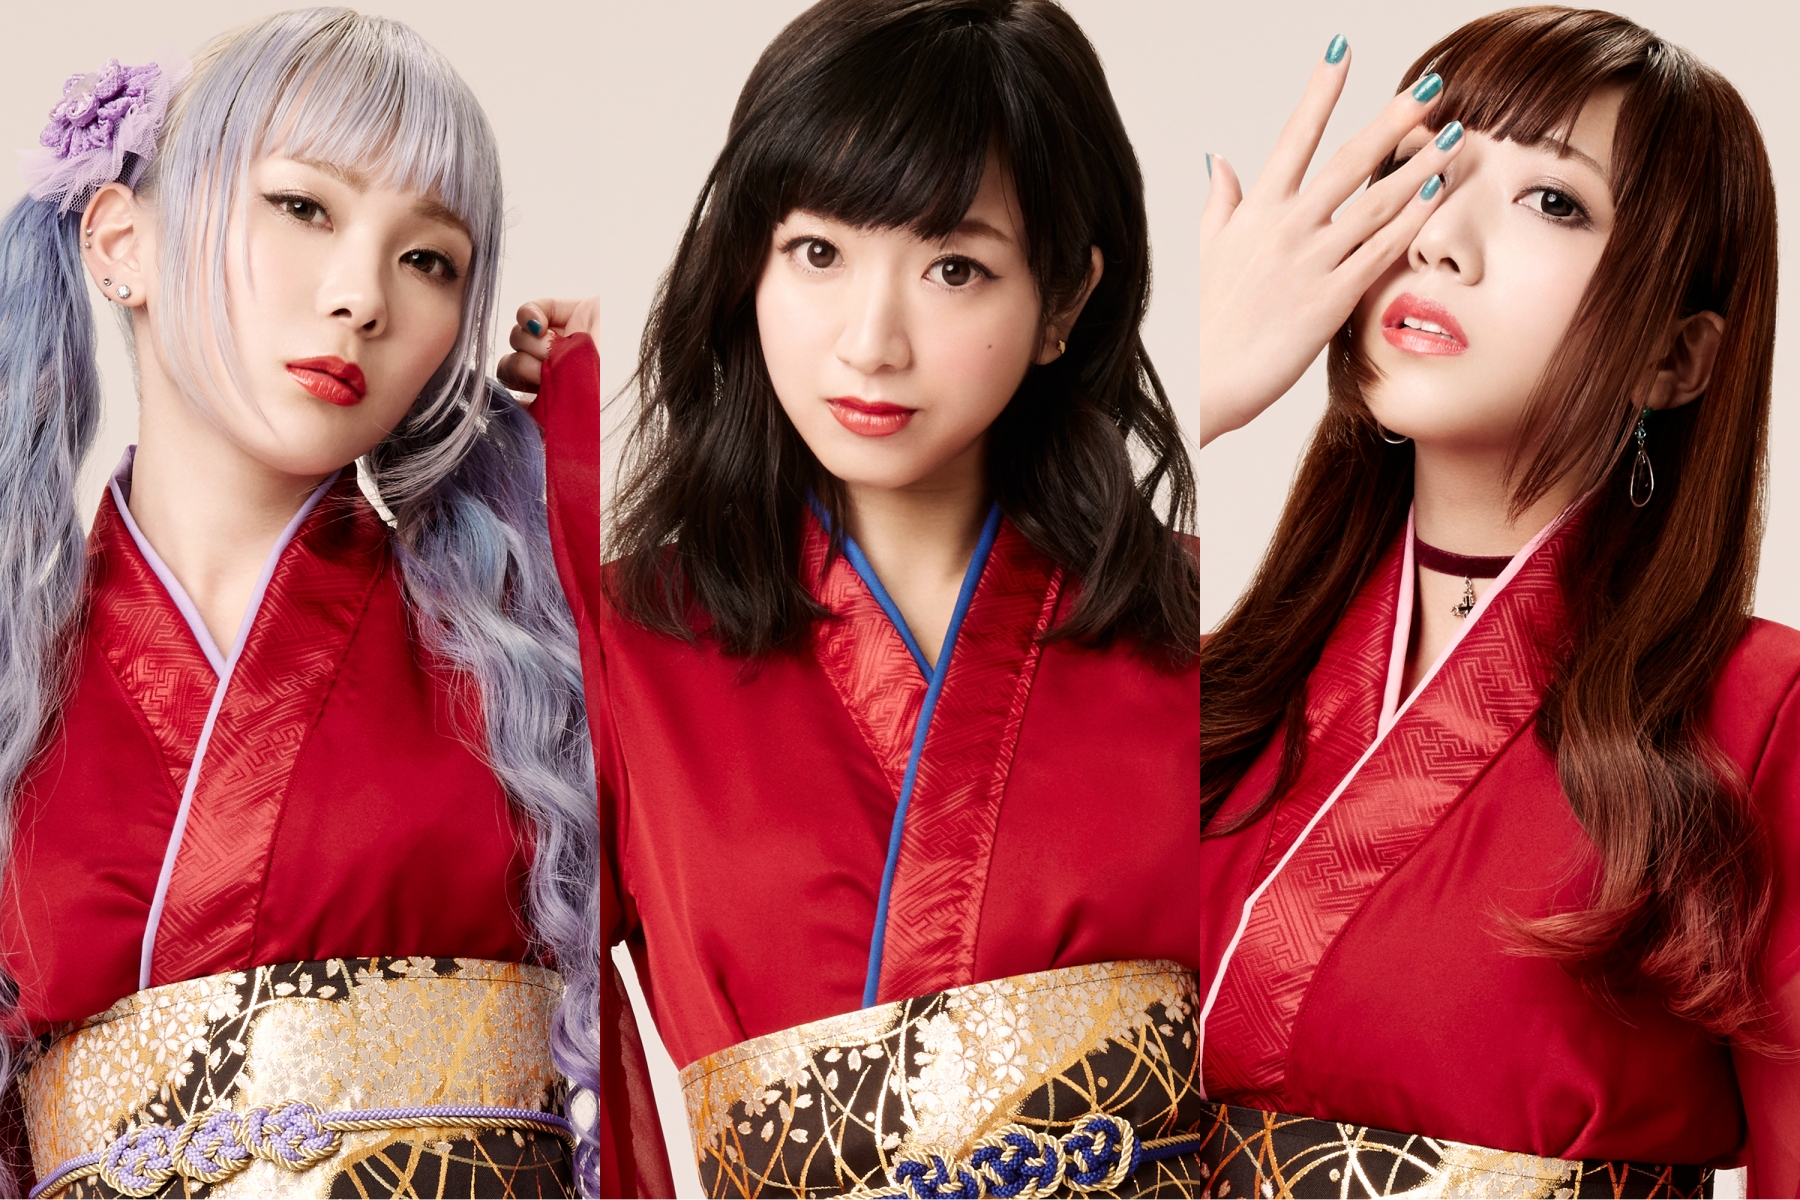 Idol group bertema ninja, Ultimate Future Weapons mofu, merilis MV untuk single debut mereka! (1)